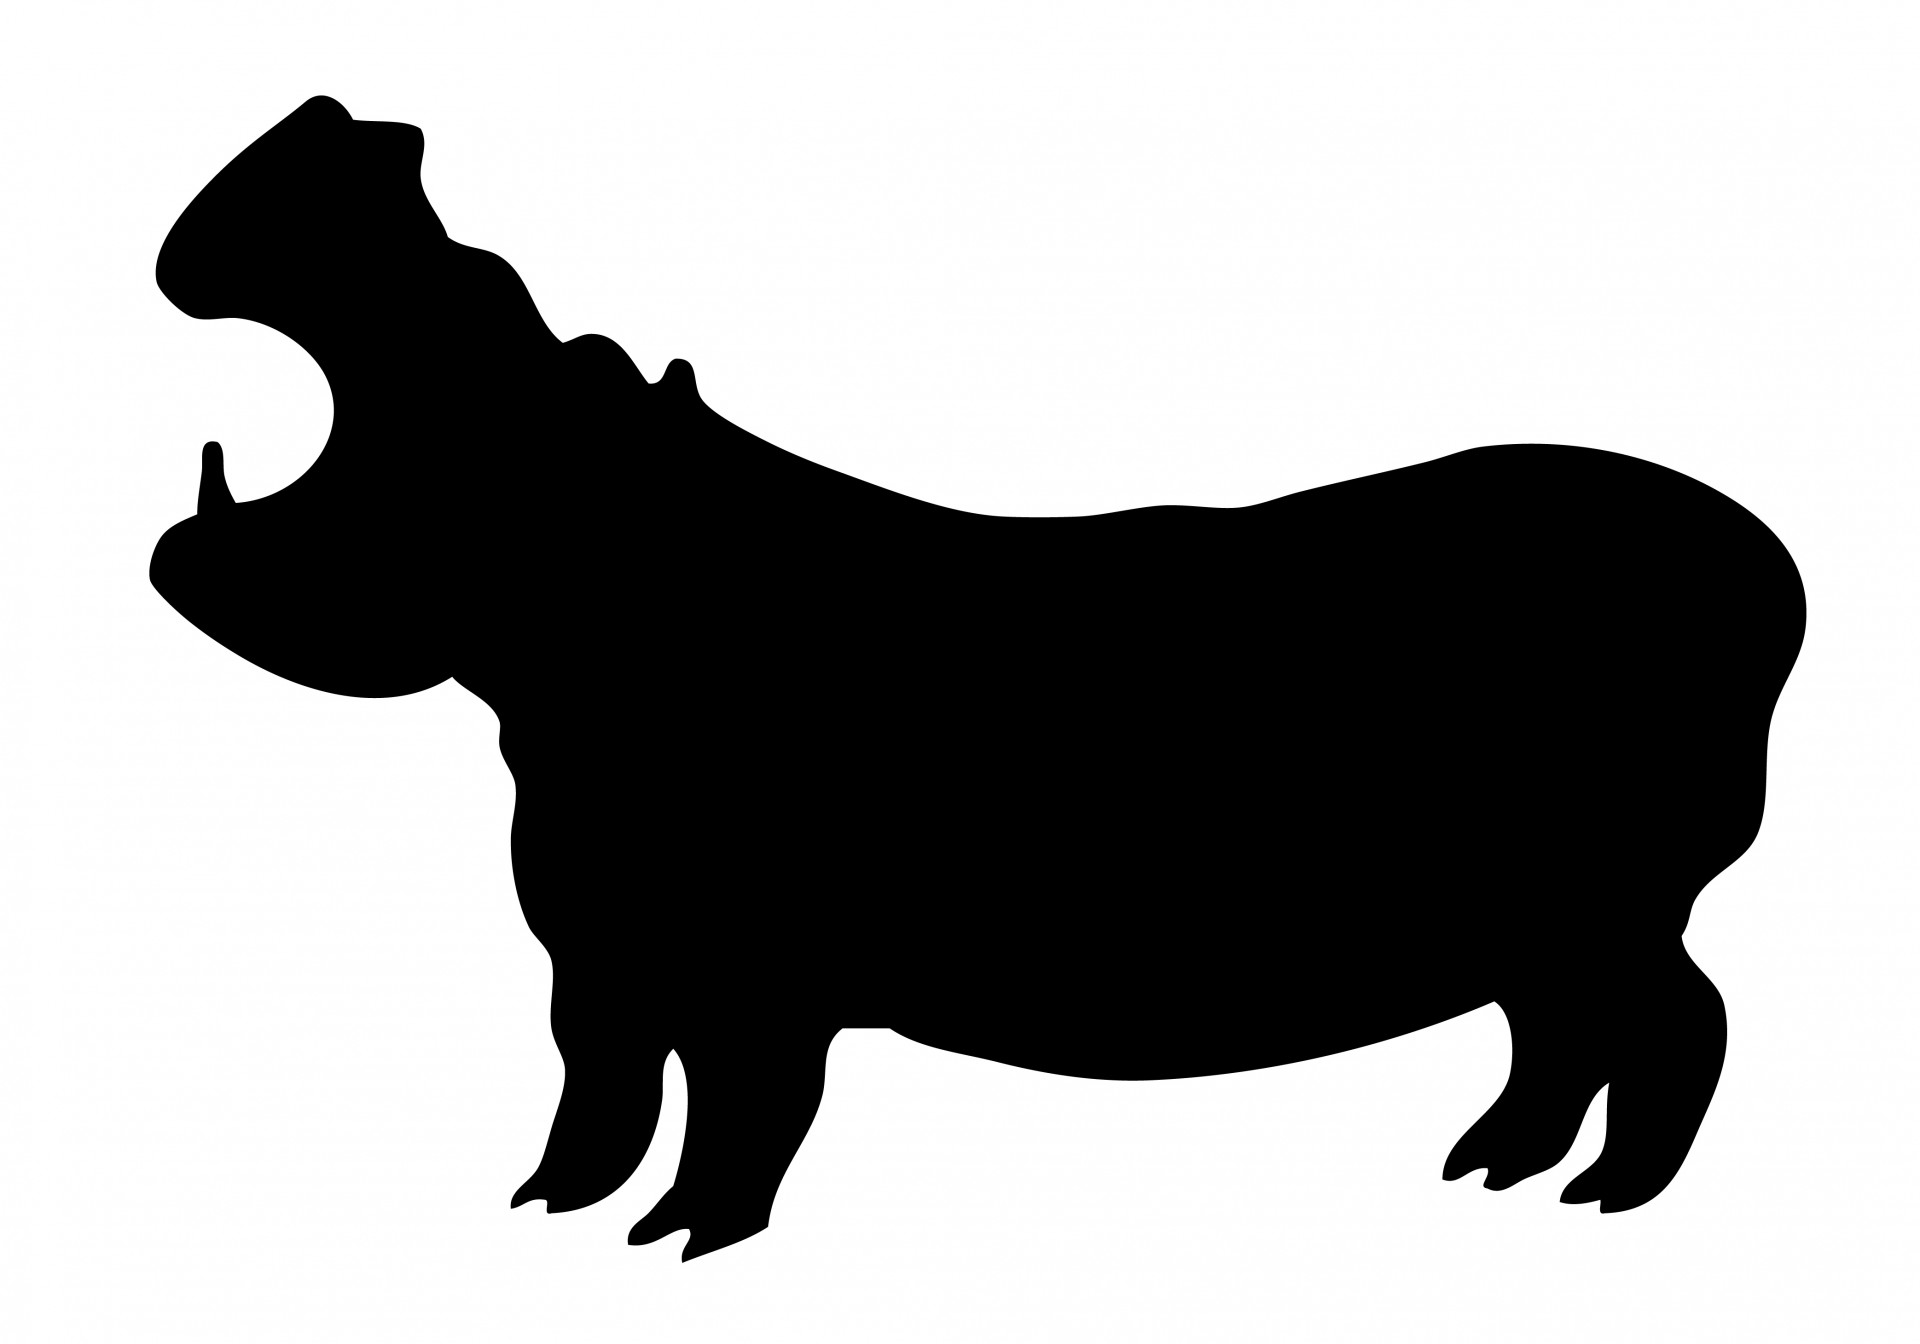 1920x1344 Hippopotamus Silhouette Clipart Free Stock Photo